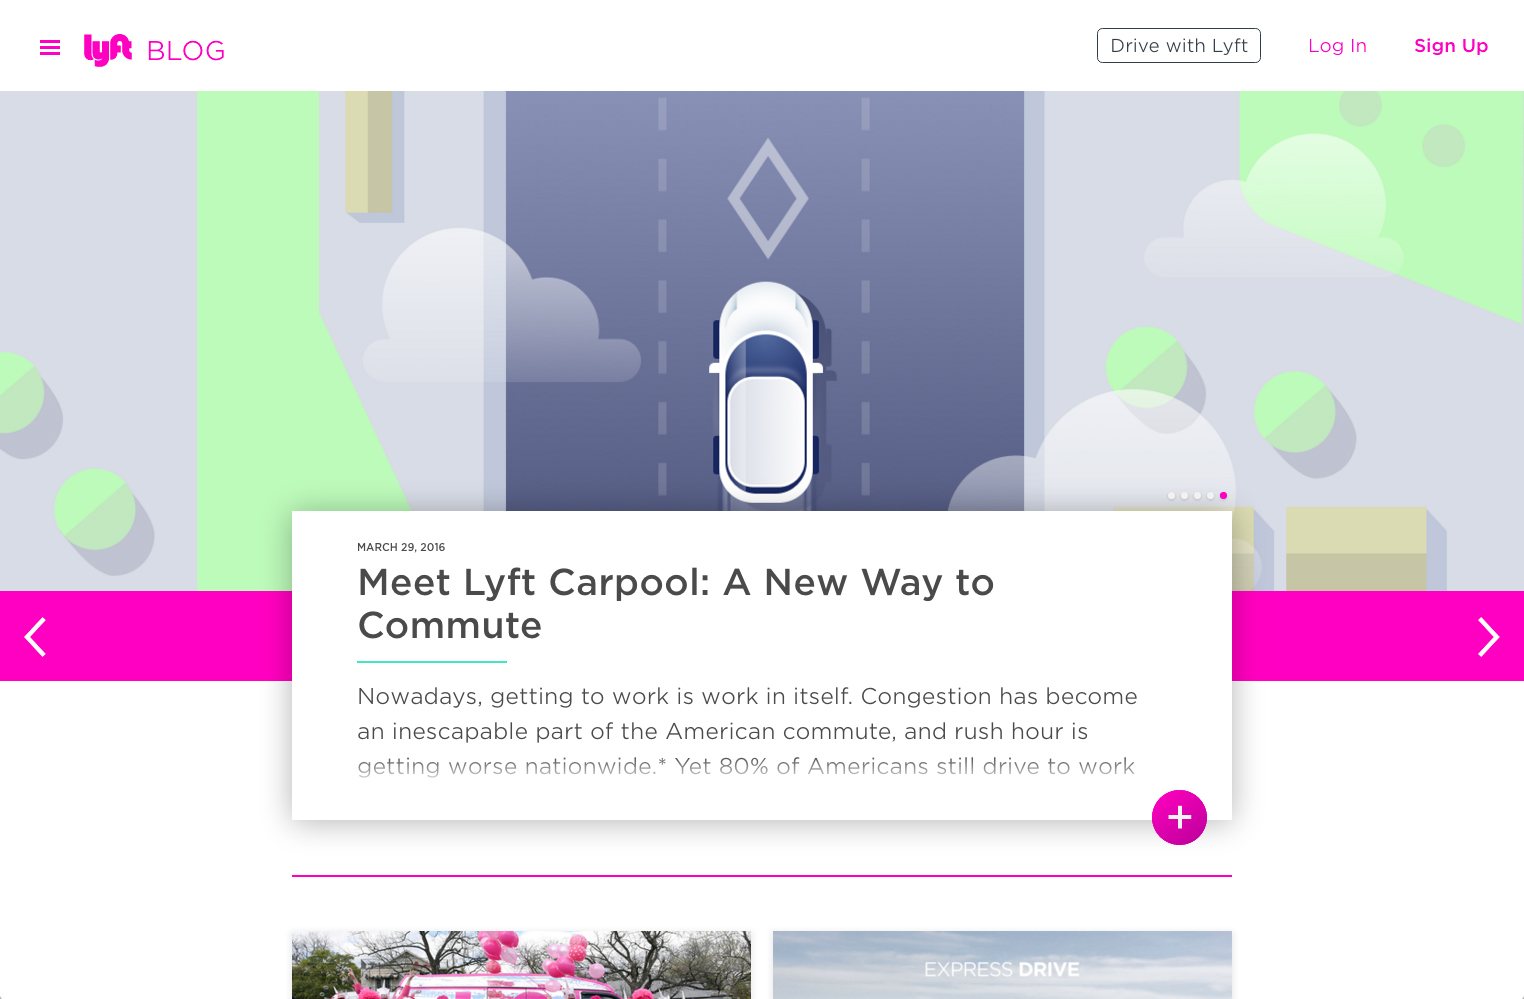 screenshot showing a live demo of Lyft site created using Squarespace